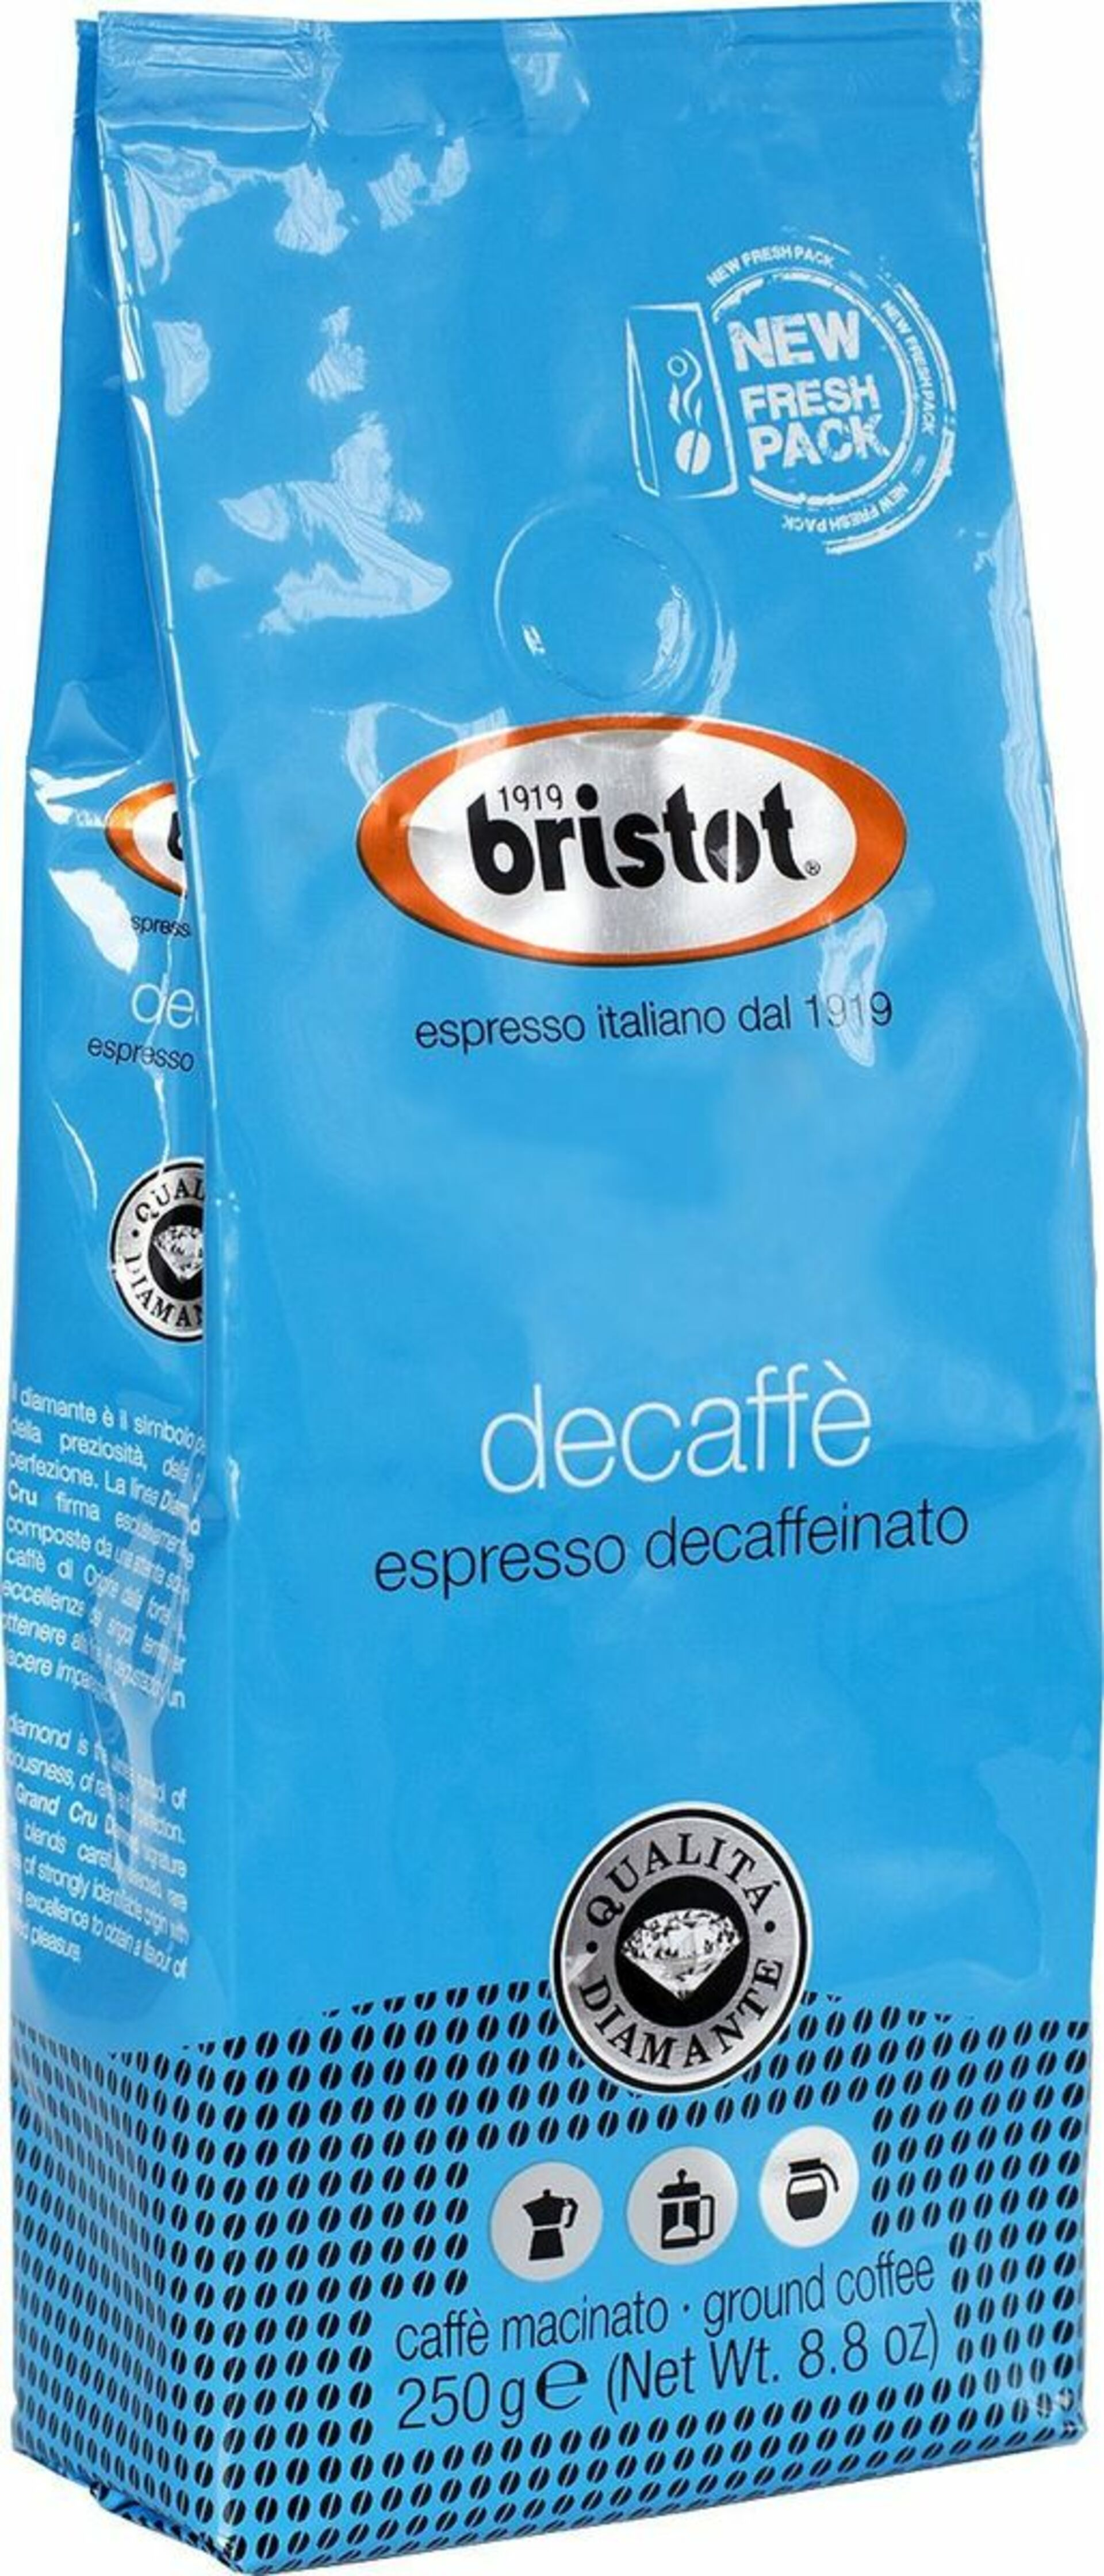 Bristot Diamante Decaf 250g 335 01 30